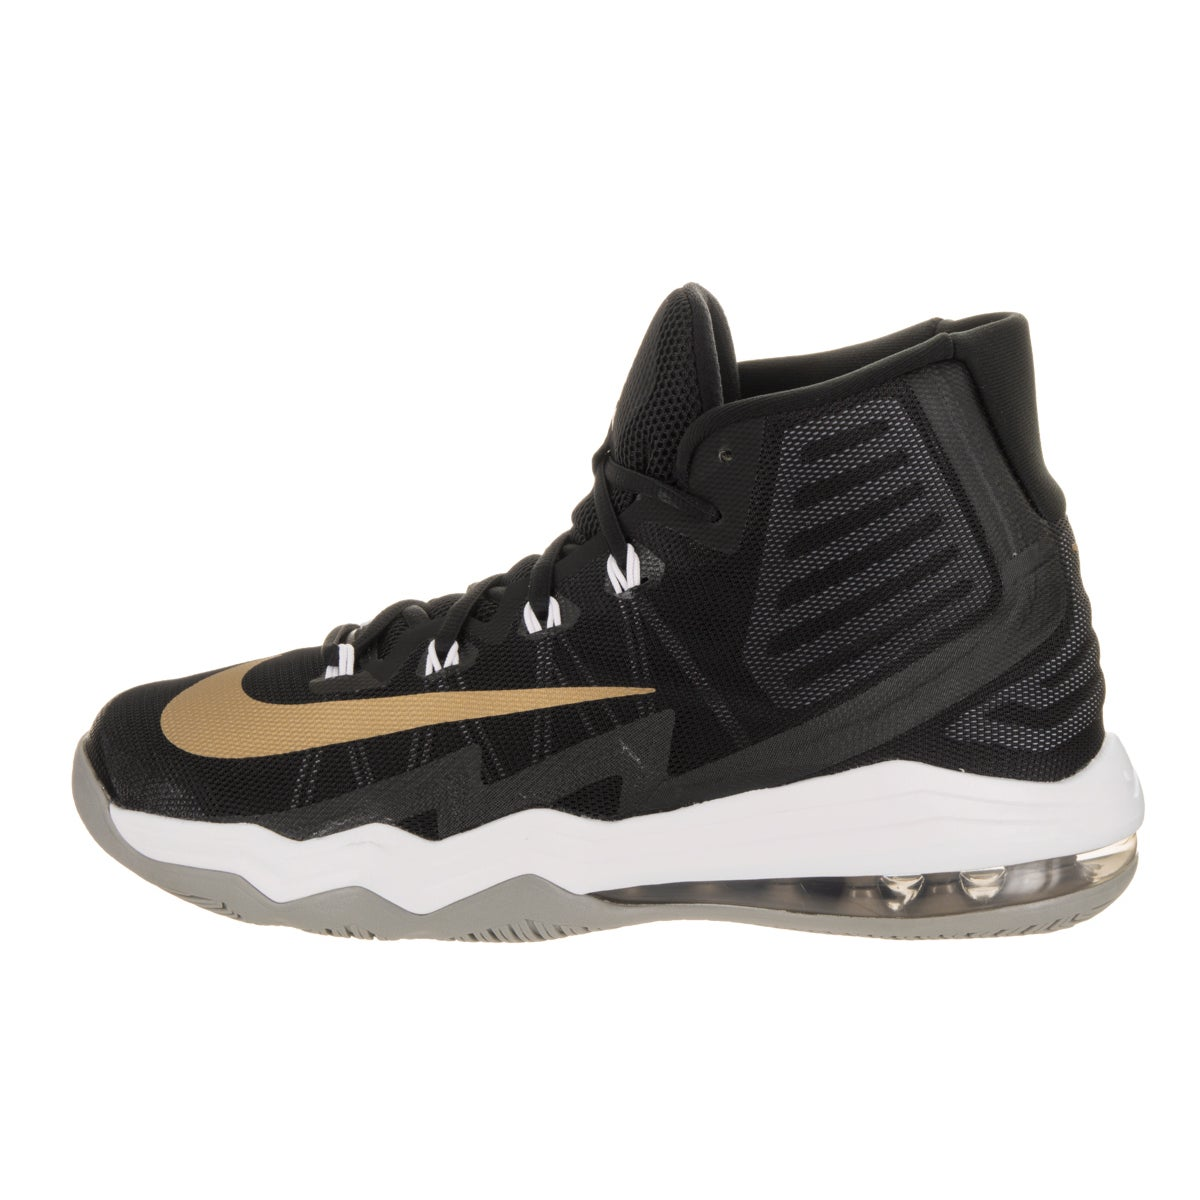 huge selection of d42bb 701de Shop Nike Men s Air Max Audacity 2016 Basketball Shoe - Free Shipping Today  - Overstock - 16120870